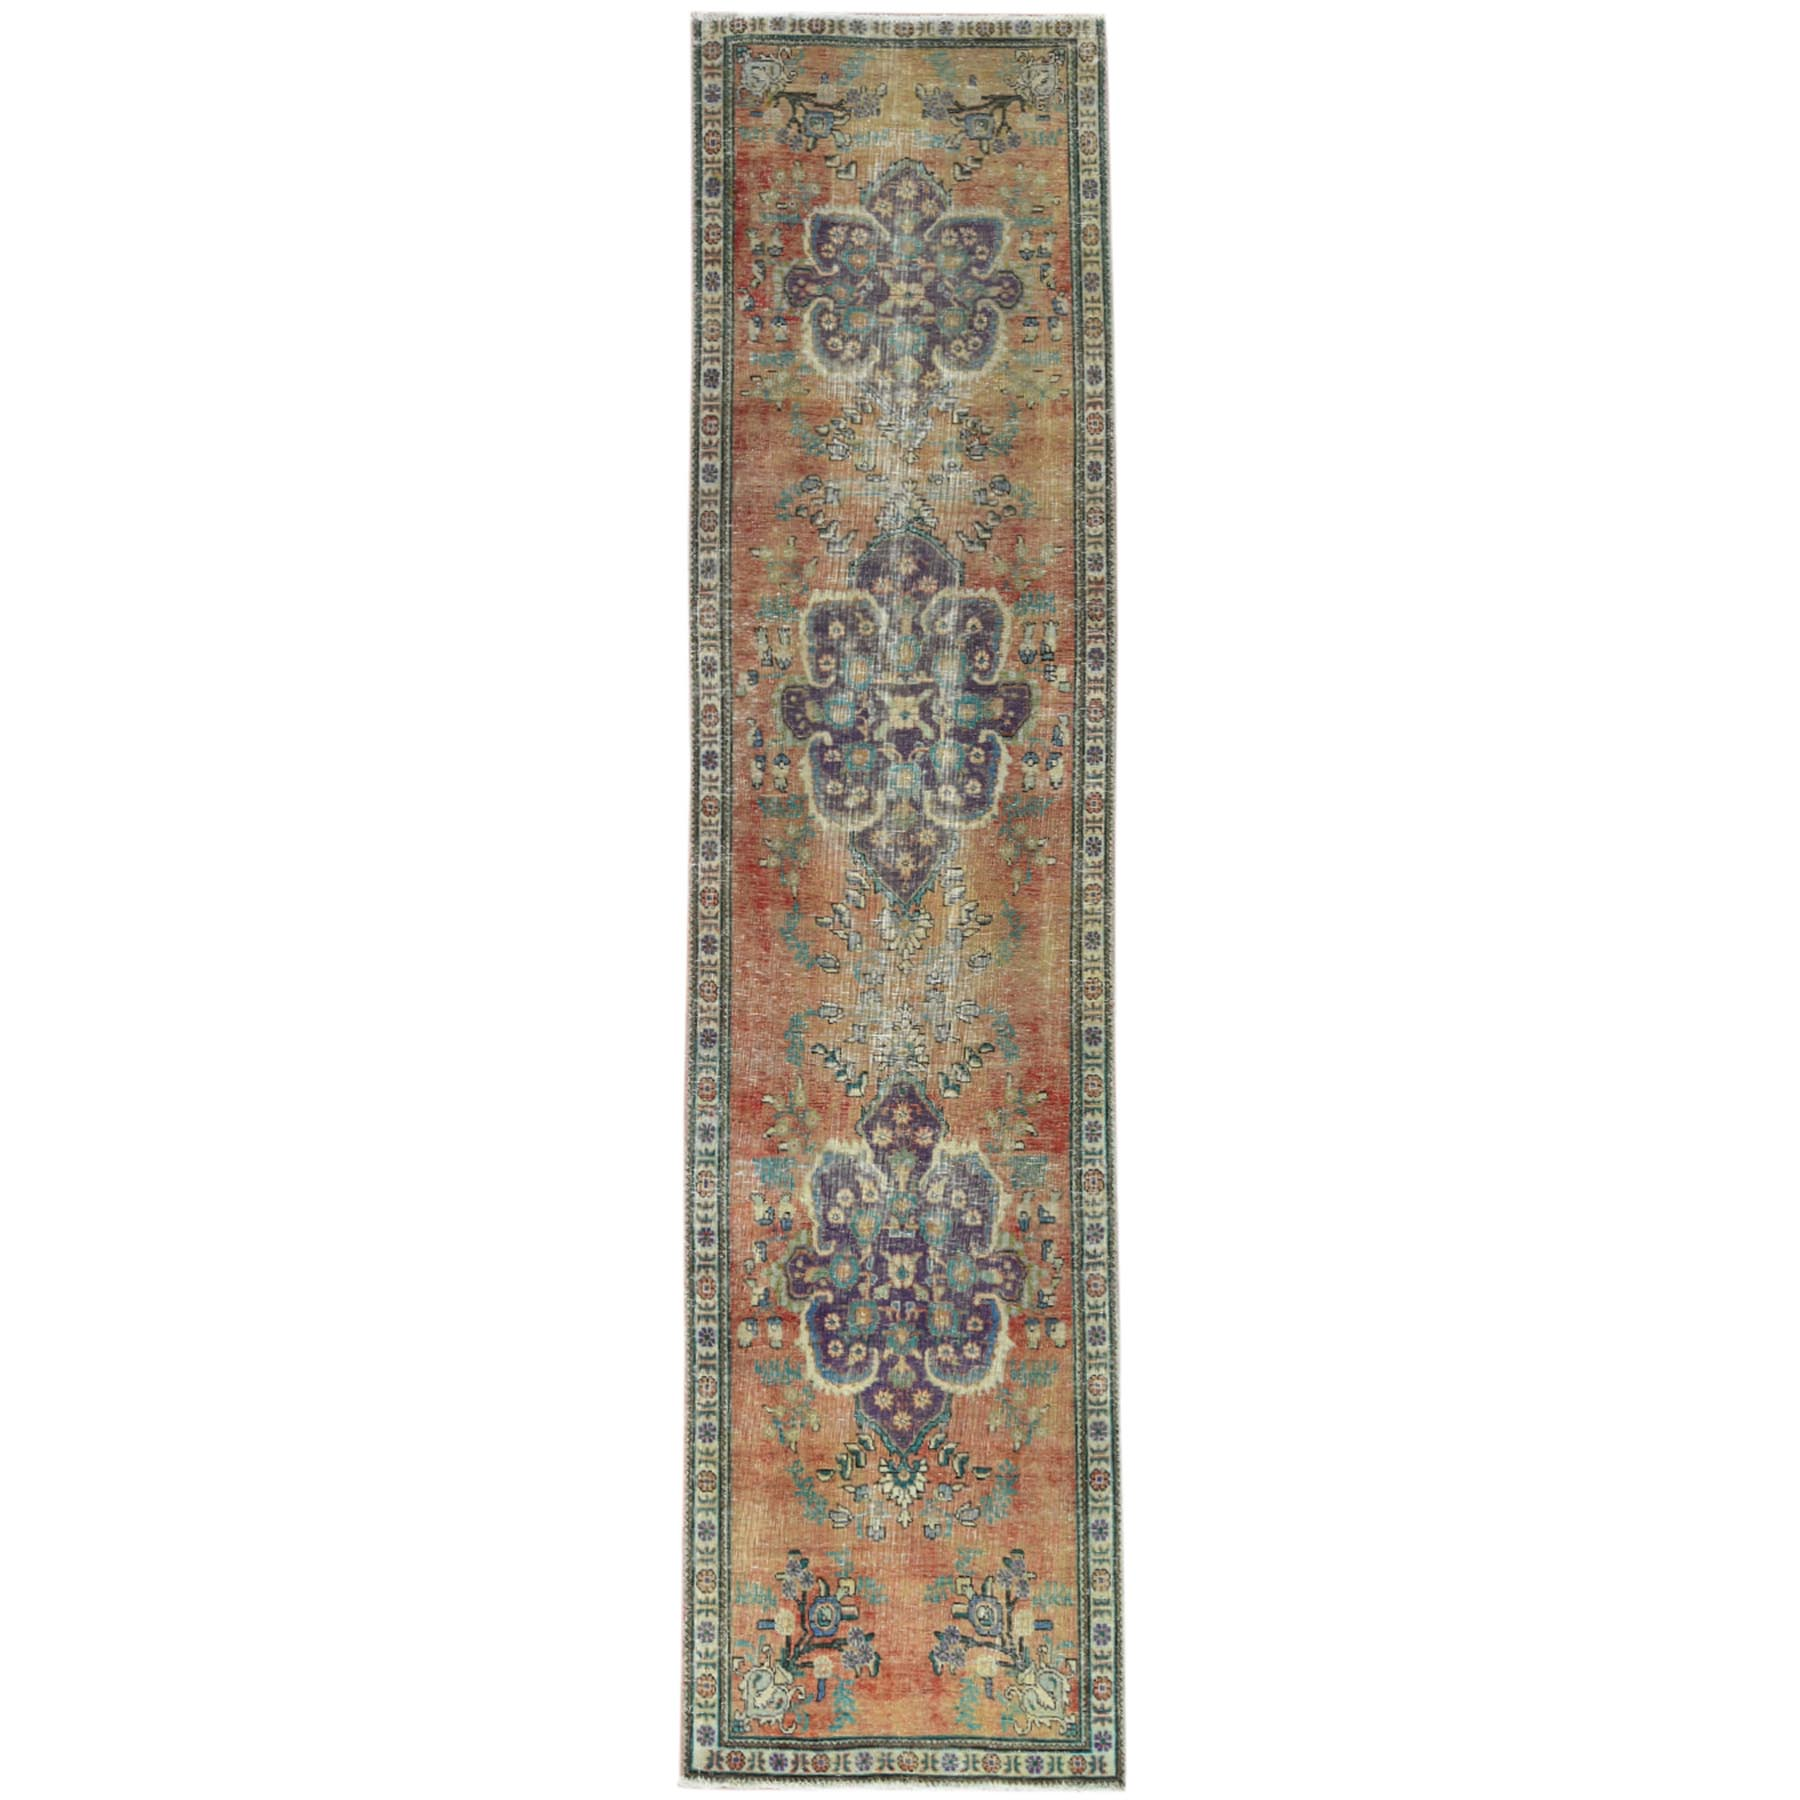 "3'1""x12'6"" Vintage Copper Brown Persian Tabriz Sheared Down Pile Clean Hand Knotted Natural Wool Oriental Runner Rug"